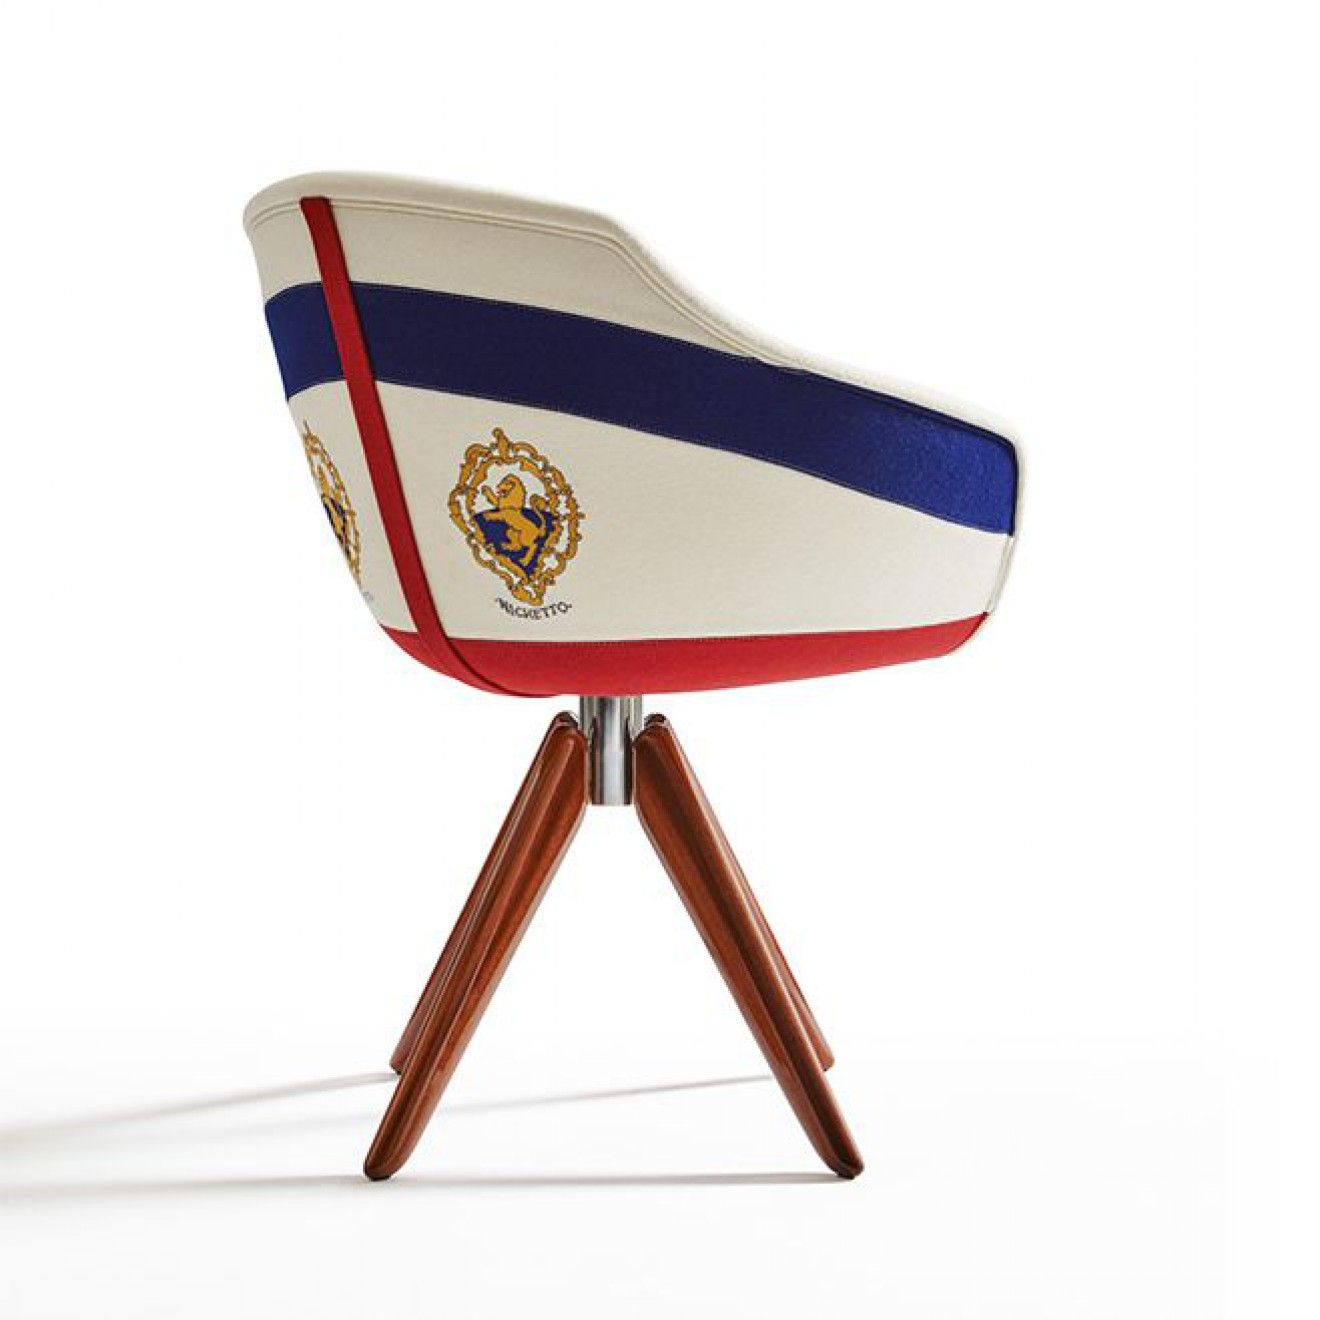 Canal chair Moooi collection 2018 Victors Design Agency